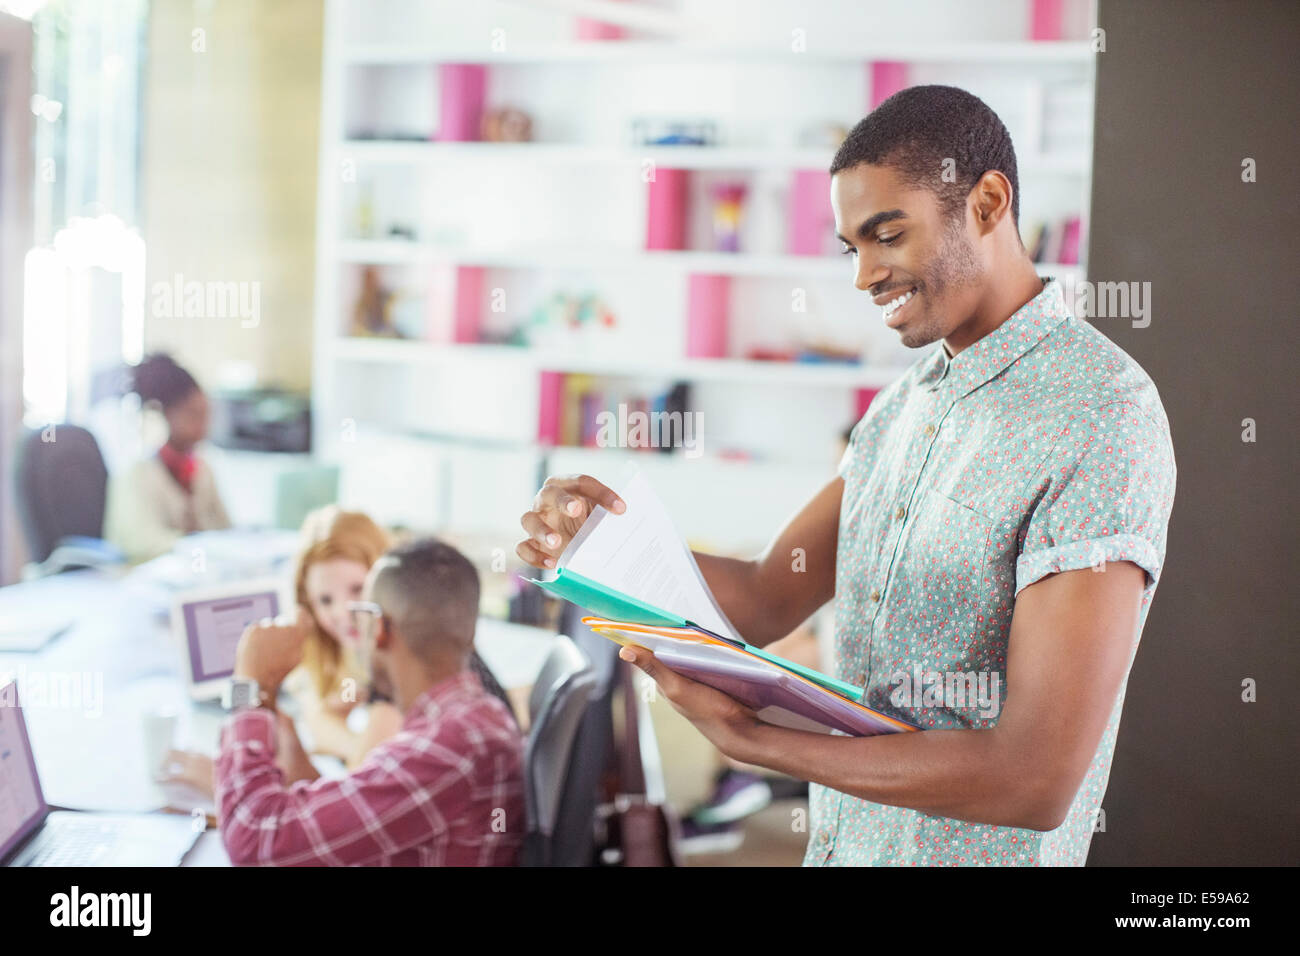 Man reading folders in office Photo Stock